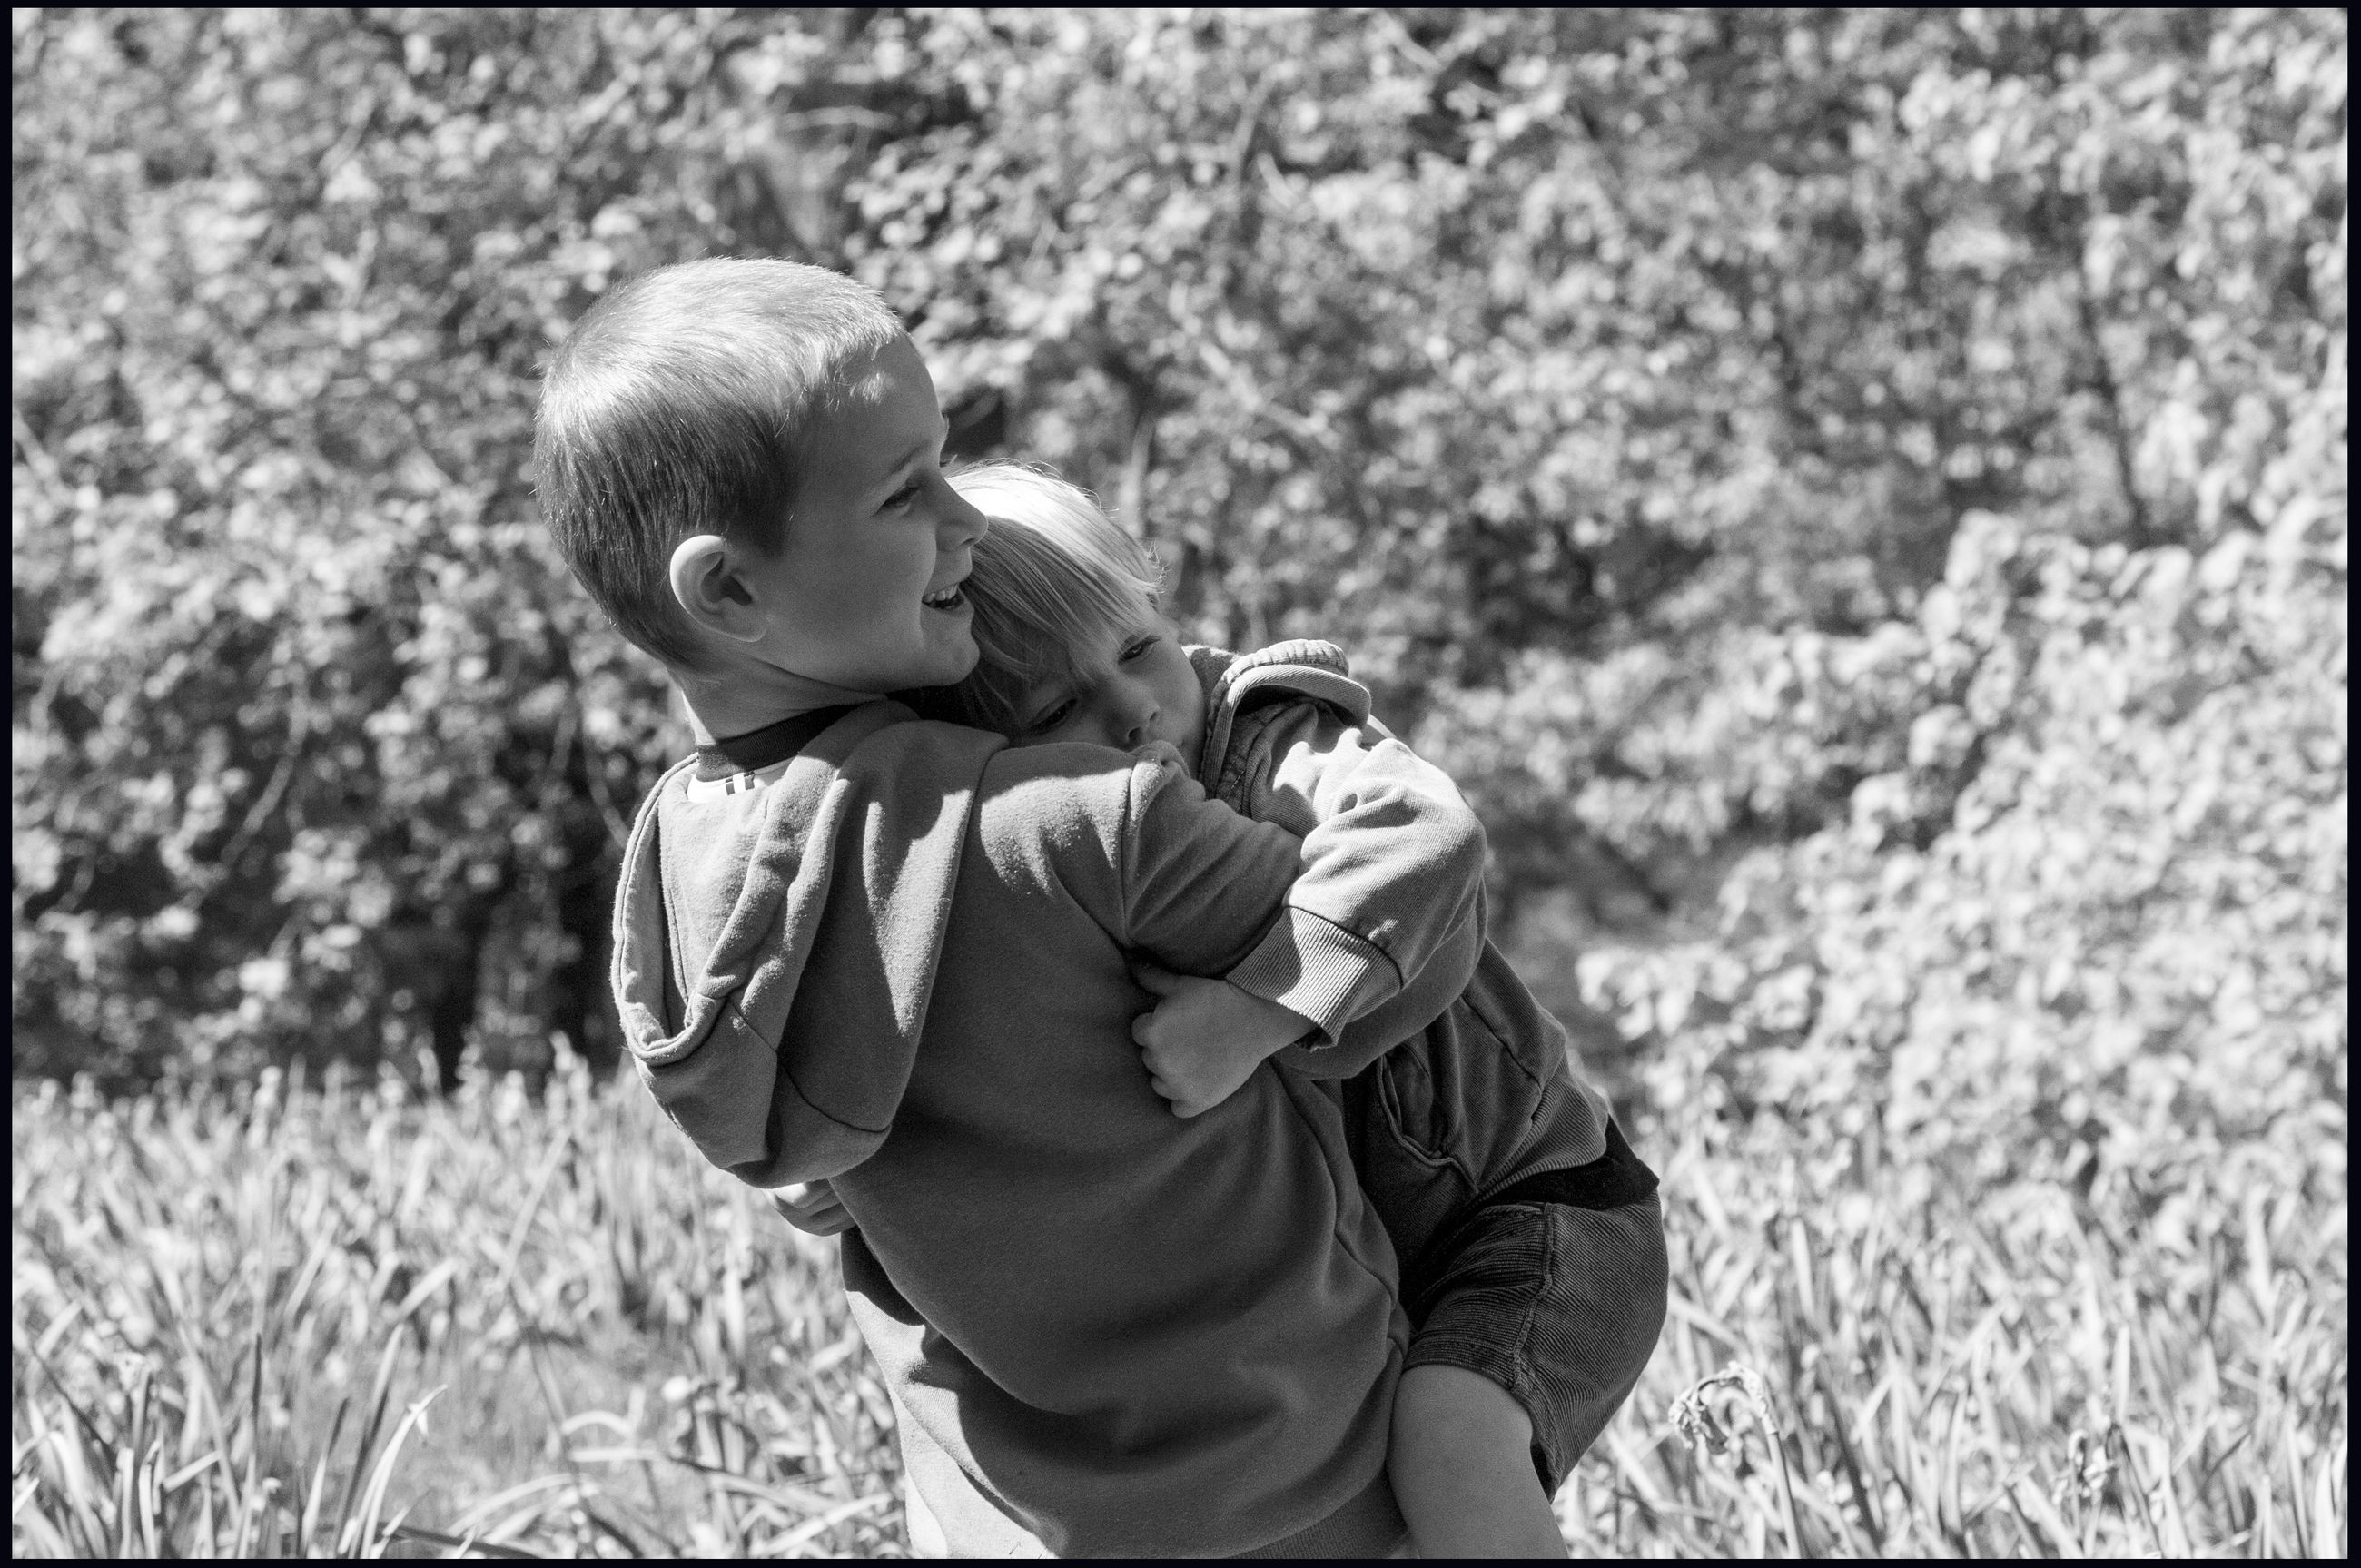 child, childhood, males, boys, men, real people, plant, family, day, leisure activity, nature, land, females, family with one child, casual clothing, field, bonding, innocence, positive emotion, son, outdoors